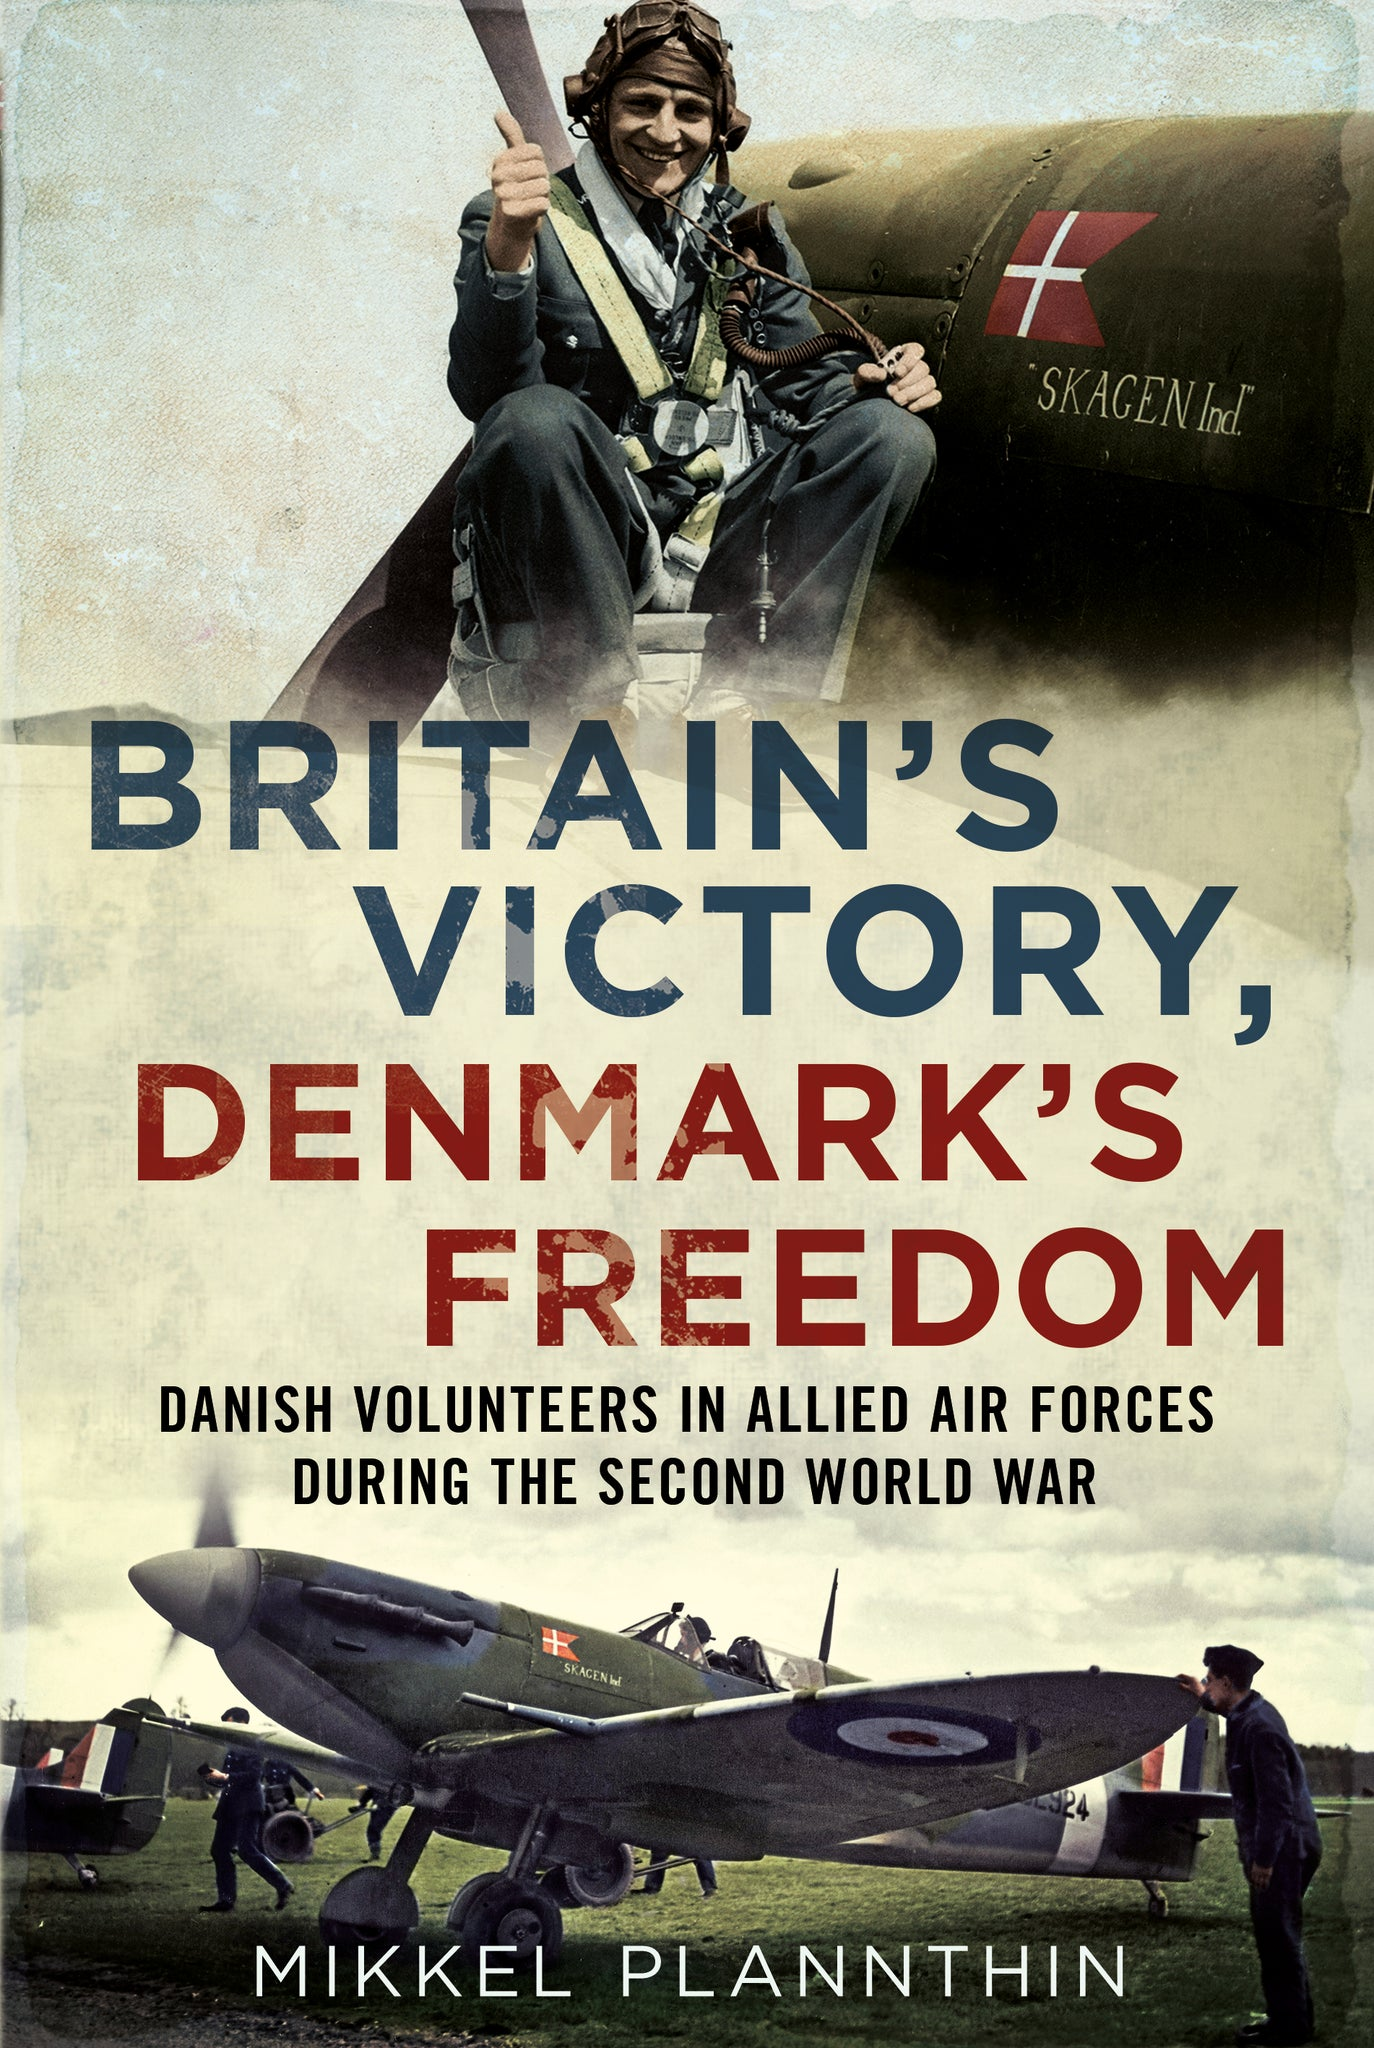 Britain's Victory, Denmark's Freedom - published by Fonthill Media